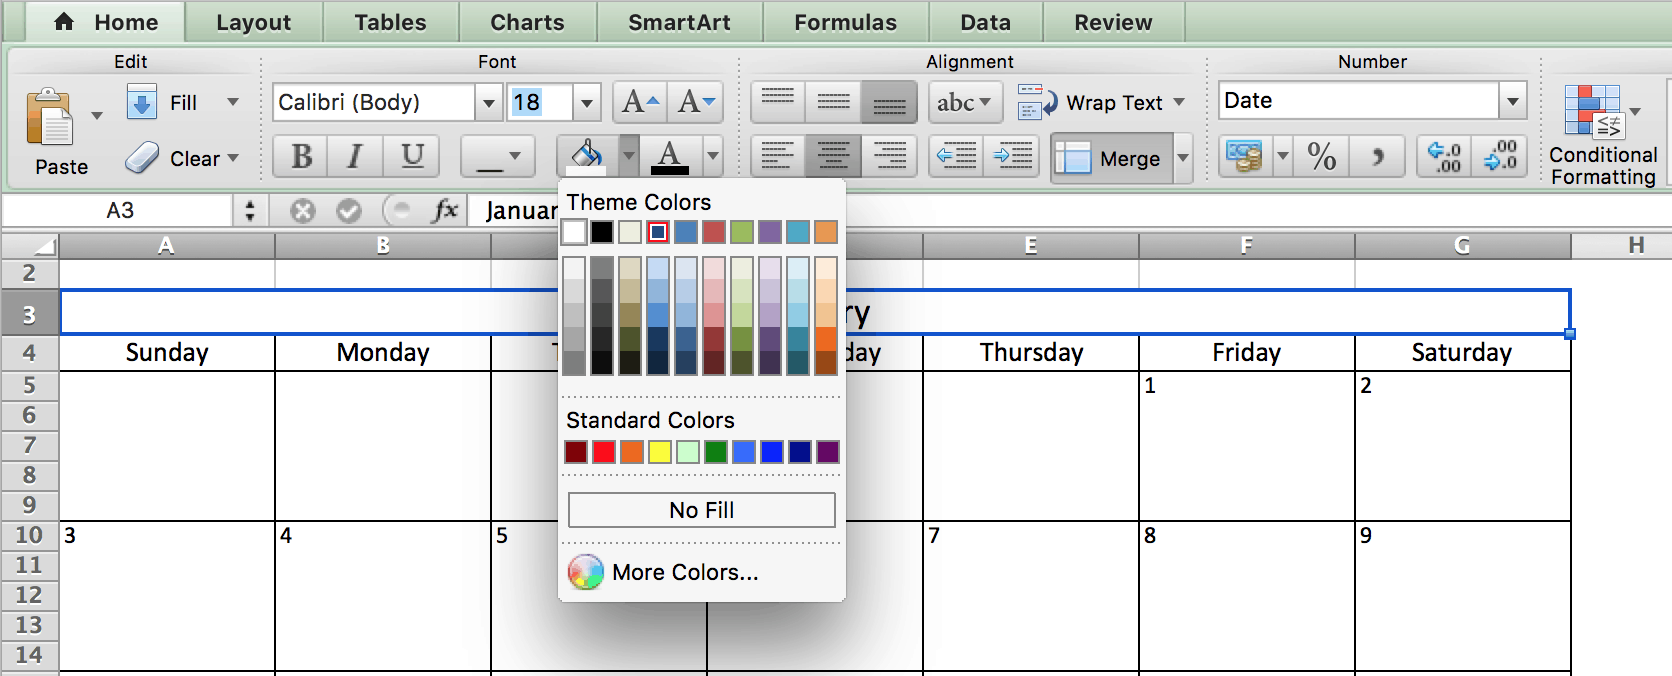 Ediblewildsus  Personable Make A  Calendar In Excel Includes Free Template With Fascinating Choosing Colors  Calendar In Excel With Cute How To Make If Statement In Excel Also Kyb Excel G Struts In Addition How To Convert From Word To Excel And Shared Excel File Locked For Editing As Well As If Excel And Additionally Excel One Way Data Table From Smartsheetcom With Ediblewildsus  Fascinating Make A  Calendar In Excel Includes Free Template With Cute Choosing Colors  Calendar In Excel And Personable How To Make If Statement In Excel Also Kyb Excel G Struts In Addition How To Convert From Word To Excel From Smartsheetcom